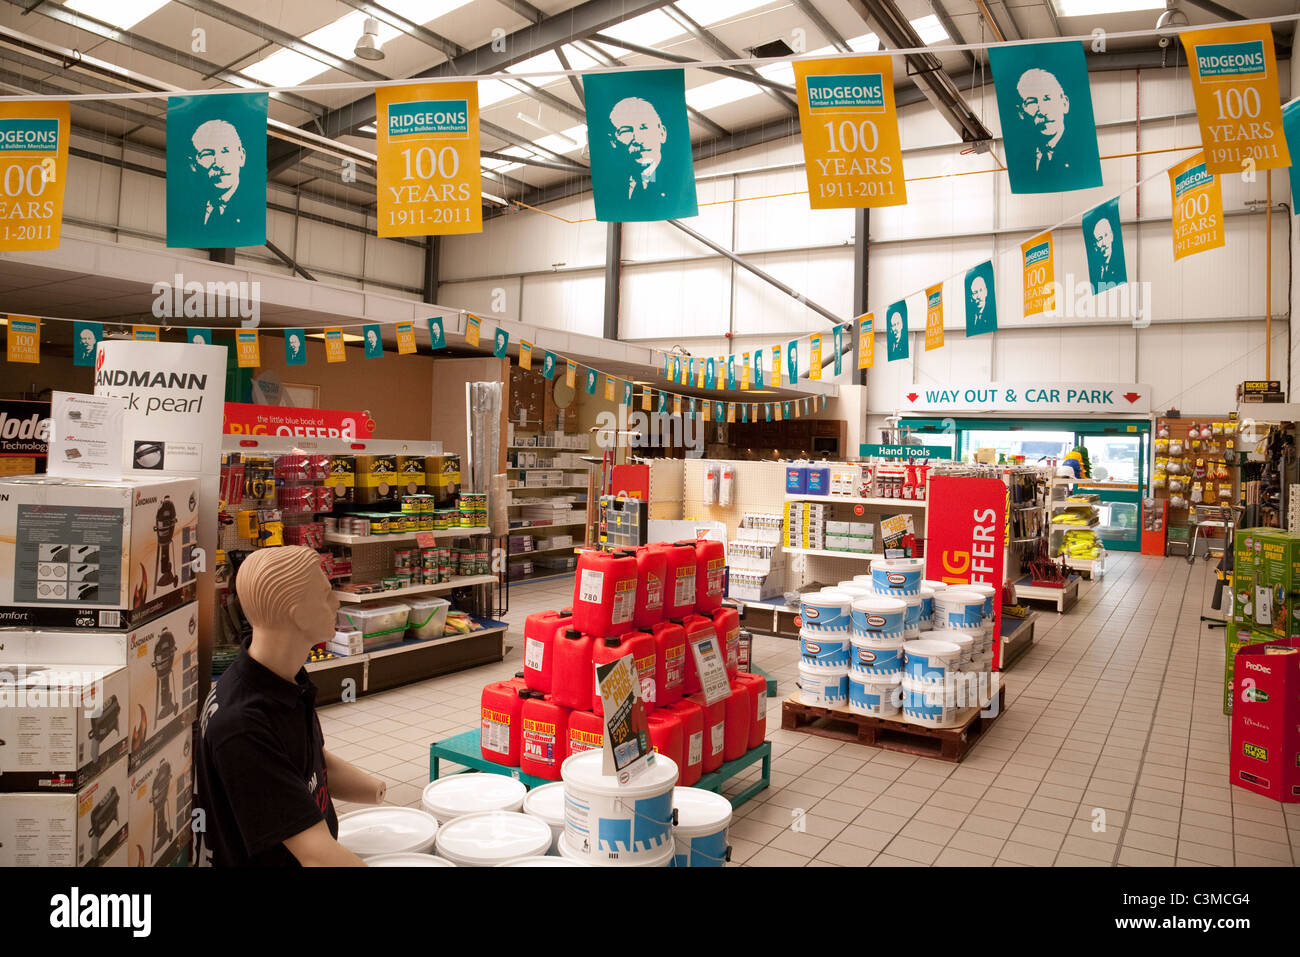 Ridgeons builders merchants store, Newmarket Suffolk UK - Stock Image